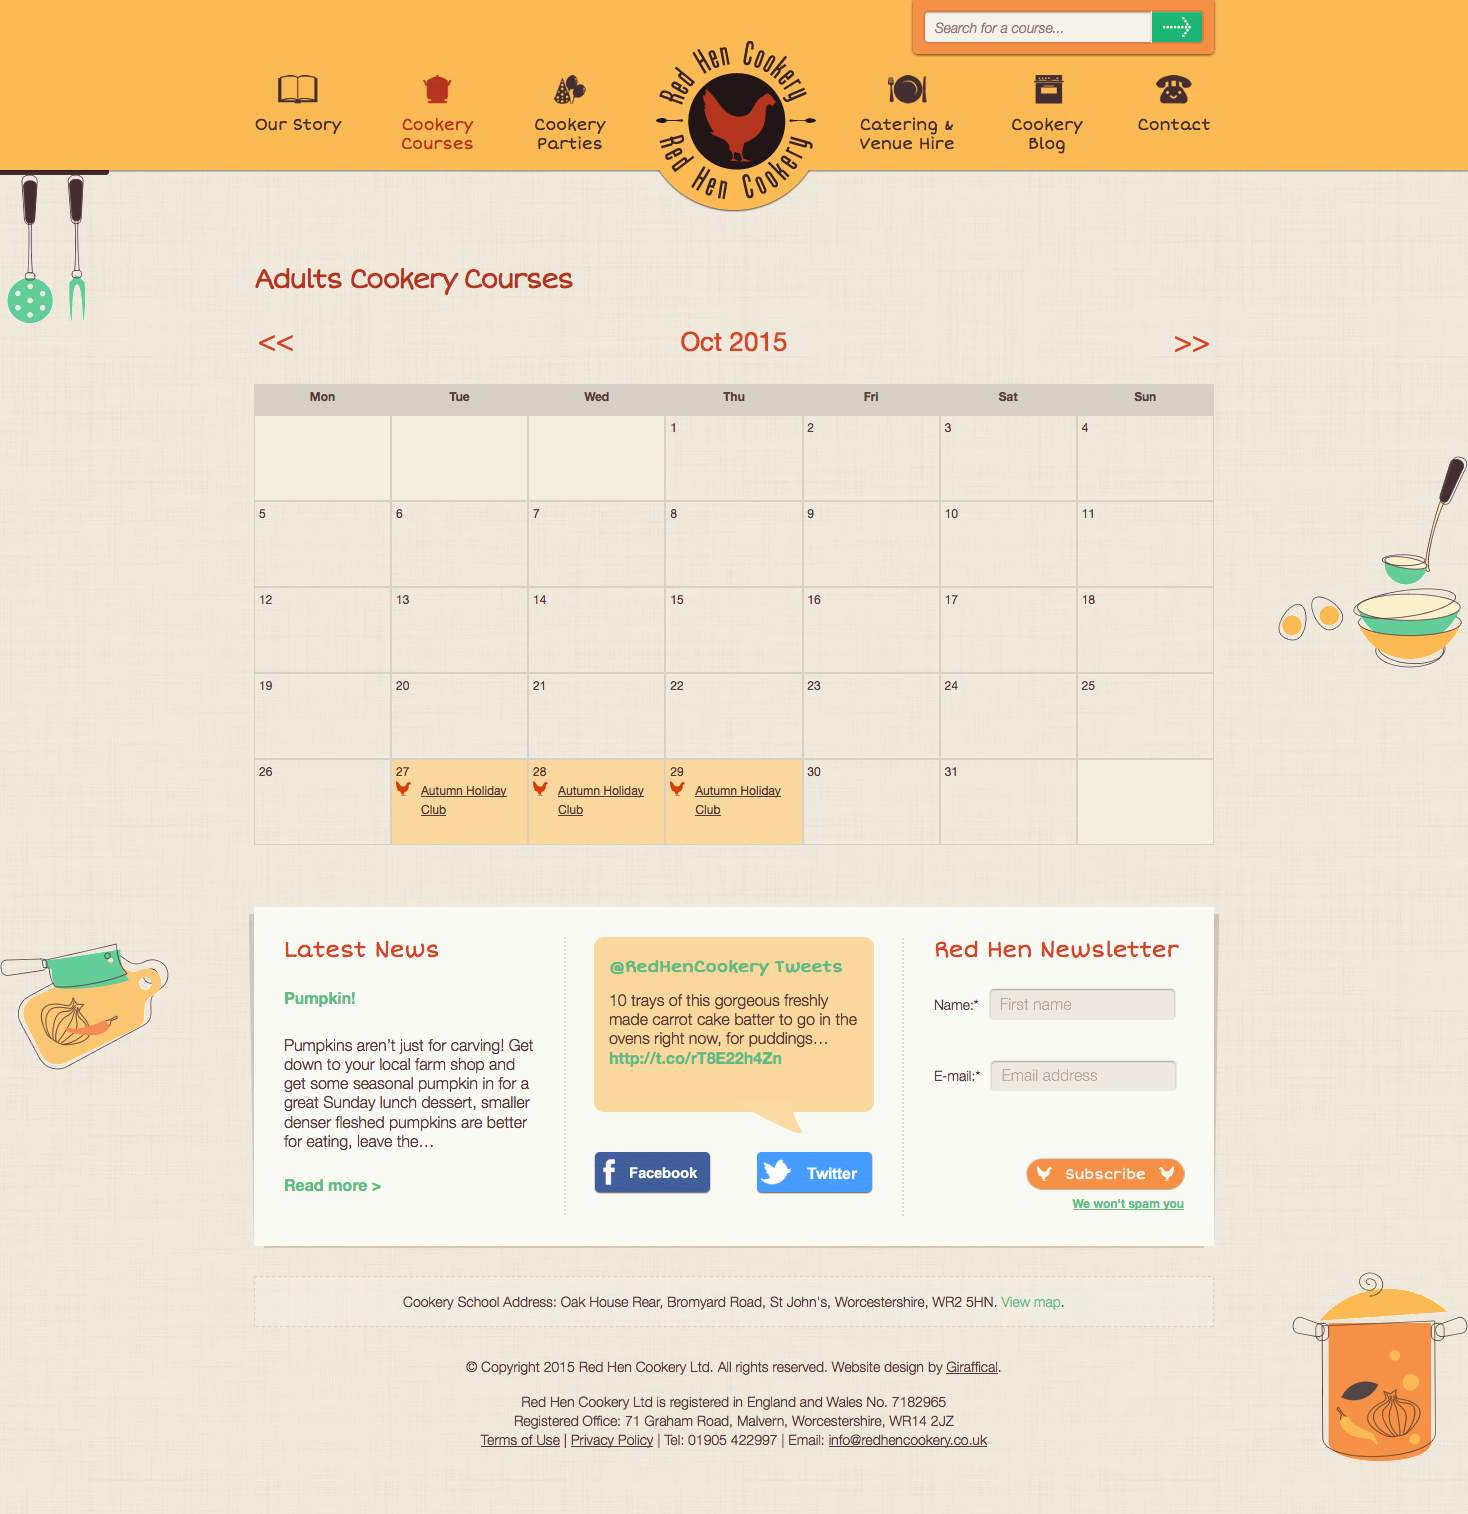 Red Hen Cookery Website Redesign - Course Calendar Page